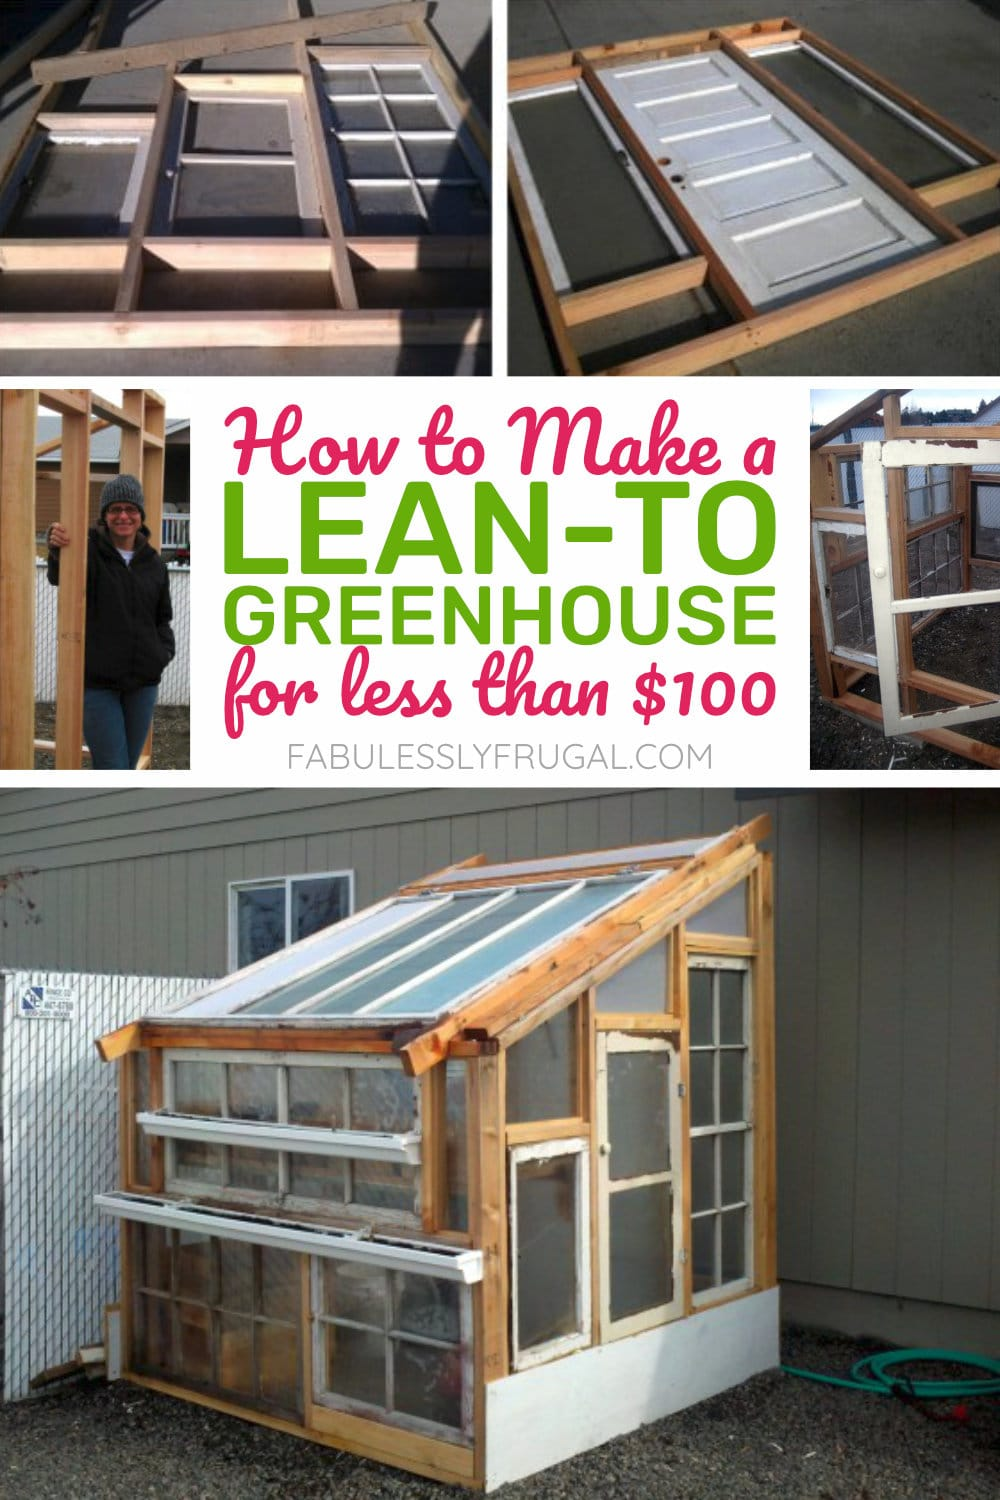 How to make a lean-to greenhouse for less than $100